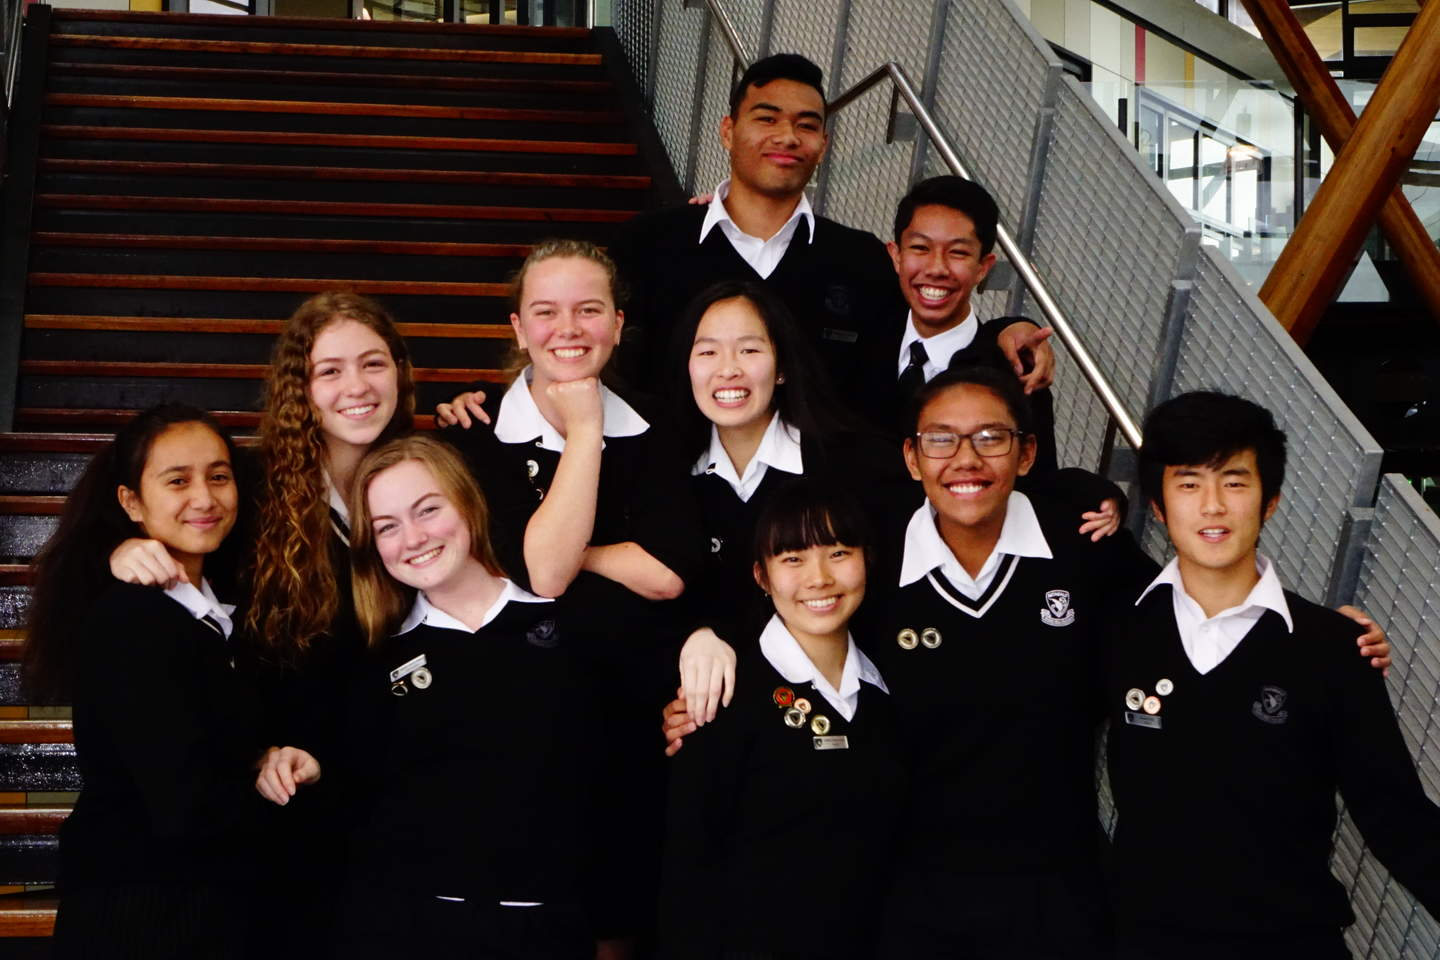 There are 30 different ethnicities represented at Auckland's Avondale College